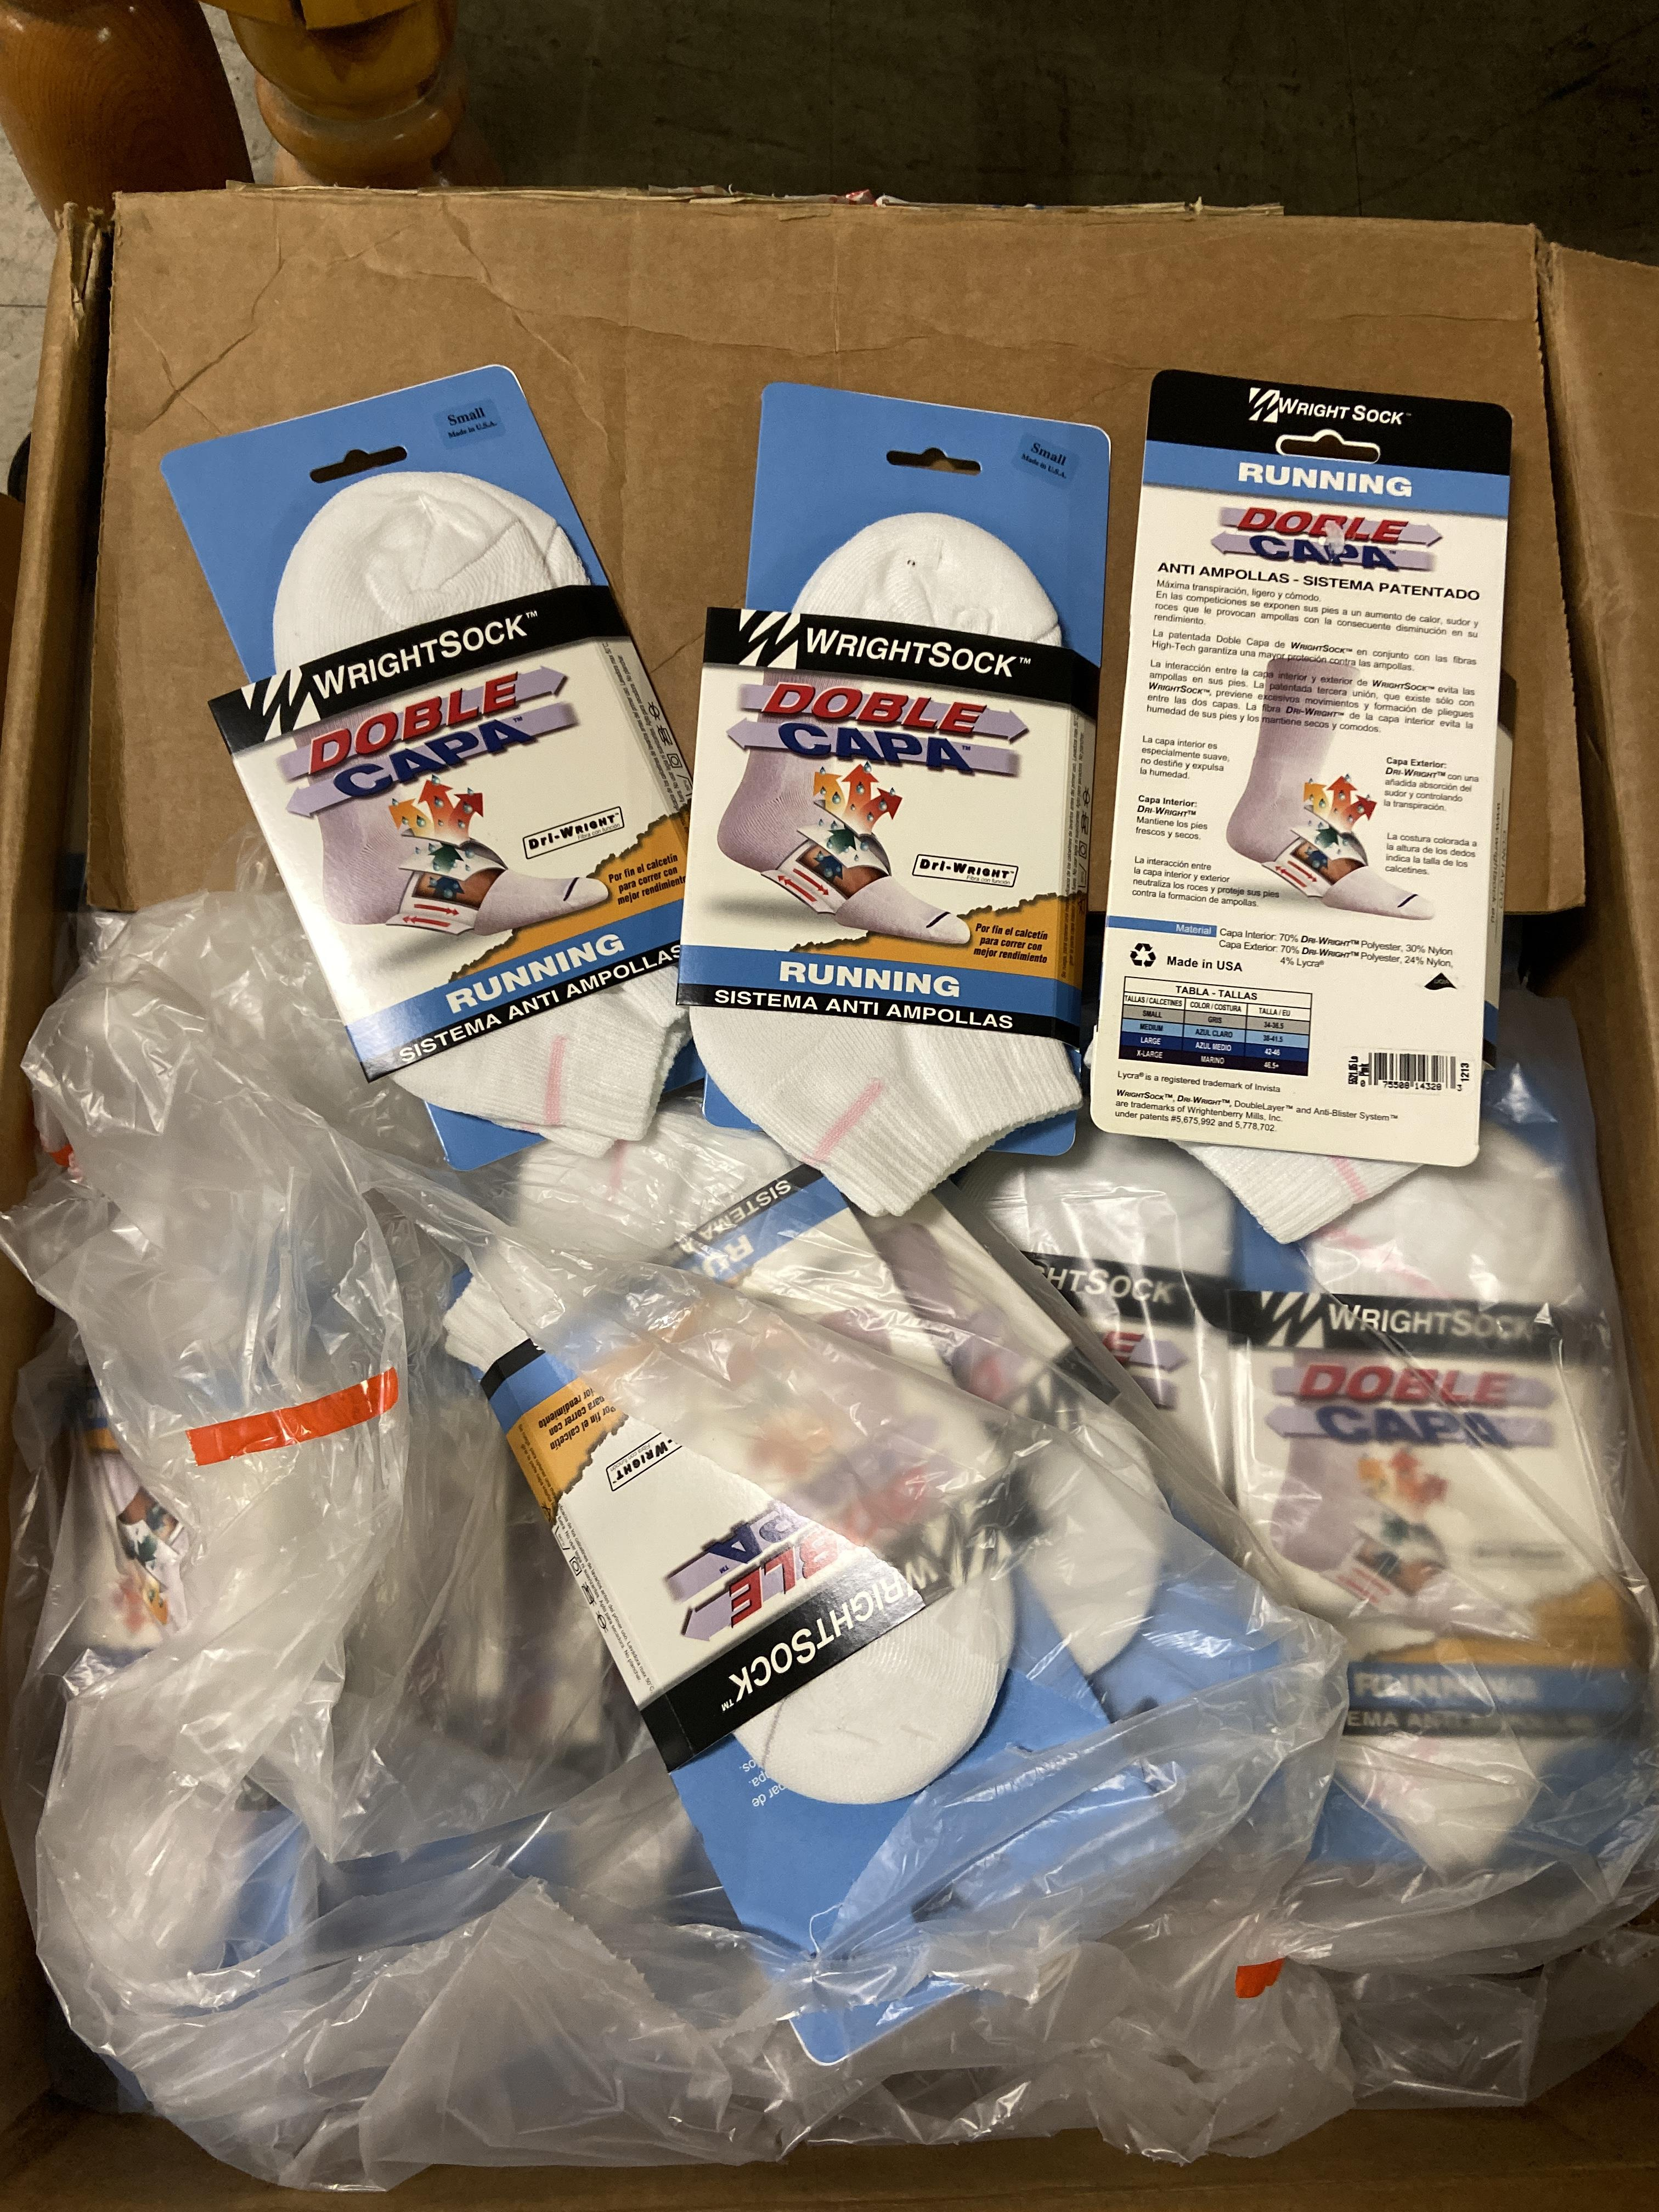 Lot 38 - 500+ packs of New Socks, Wrightsocks Various Styles, Various Designs Lot includes approximately